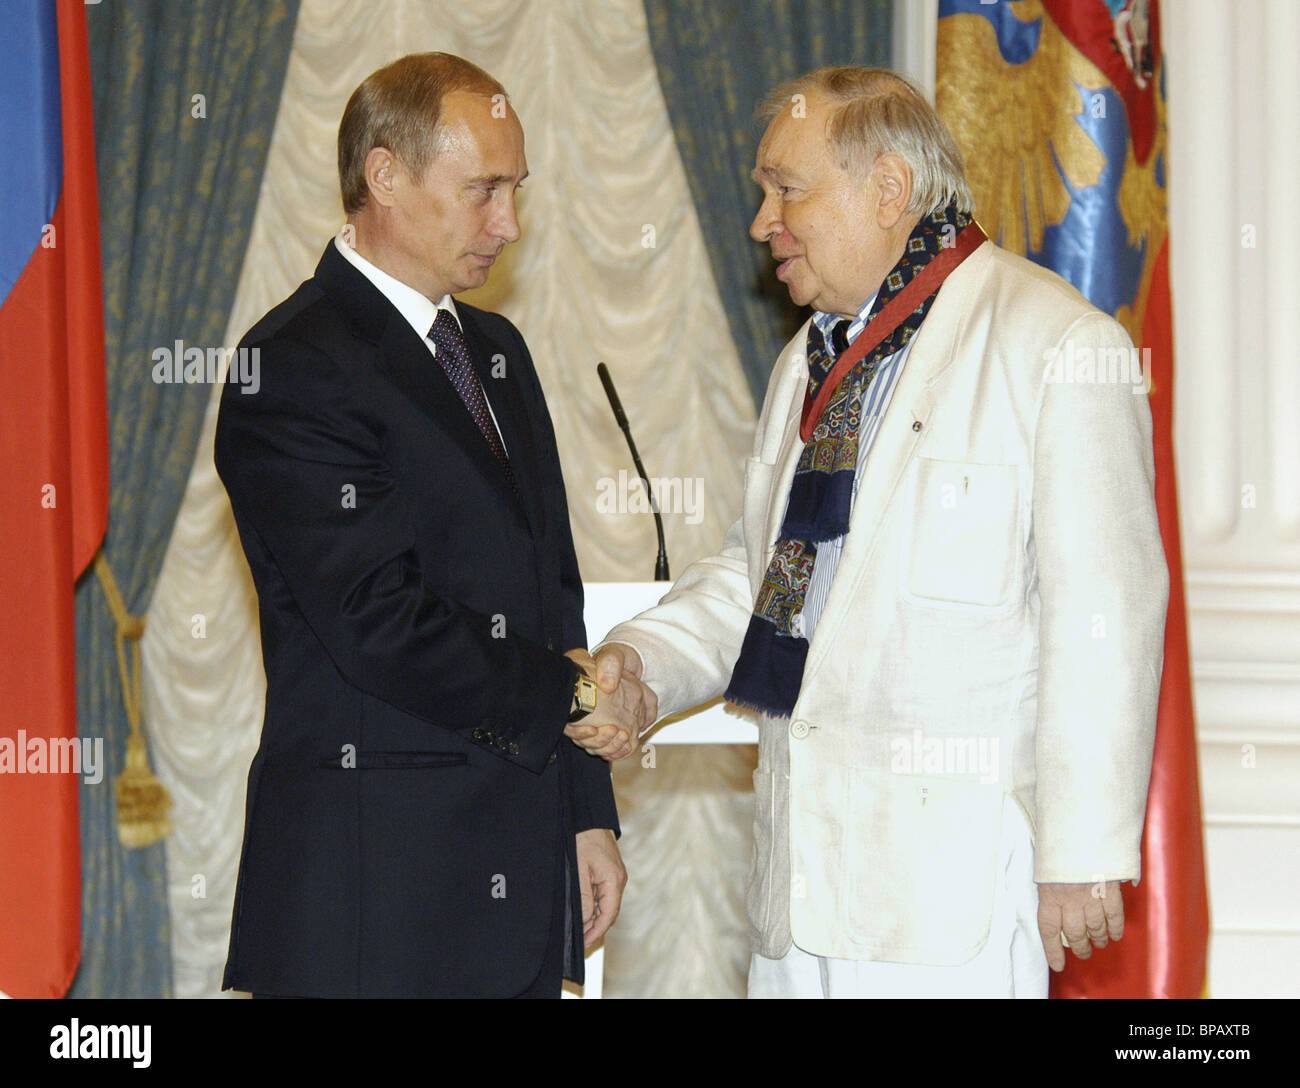 President of Russia presents state awards - Stock Image